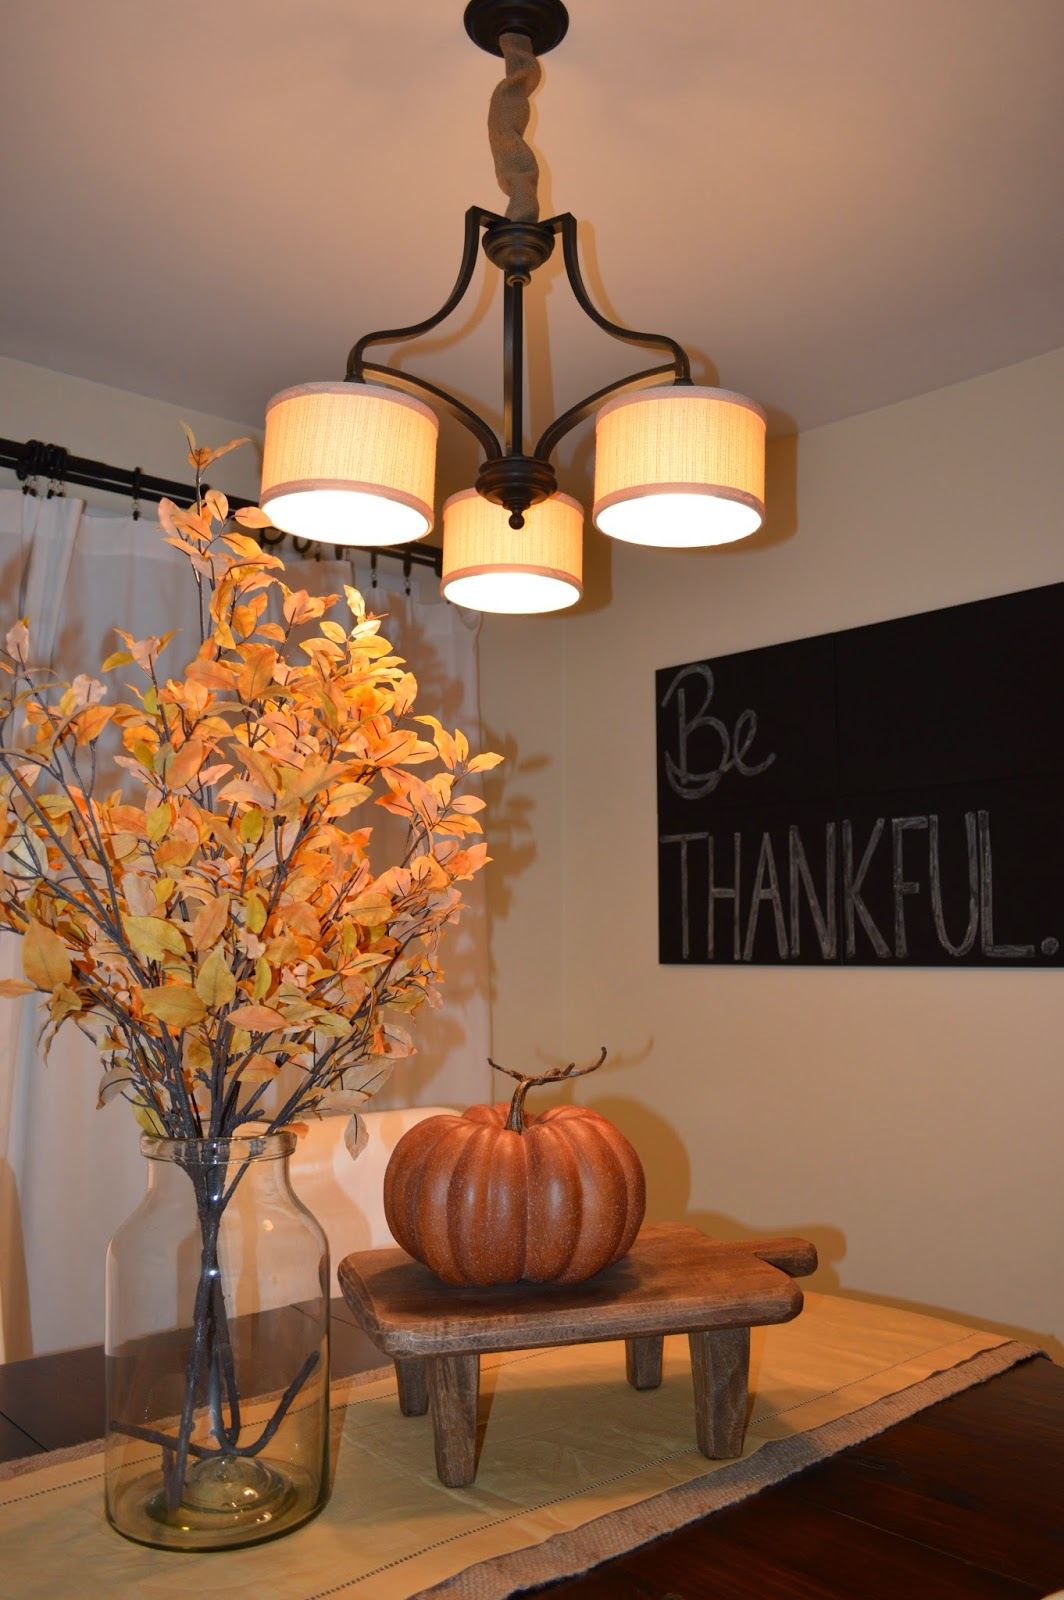 Ashley 39 s nest decorating a dining room for thanksgiving for Dining room decorating ideas for thanksgiving